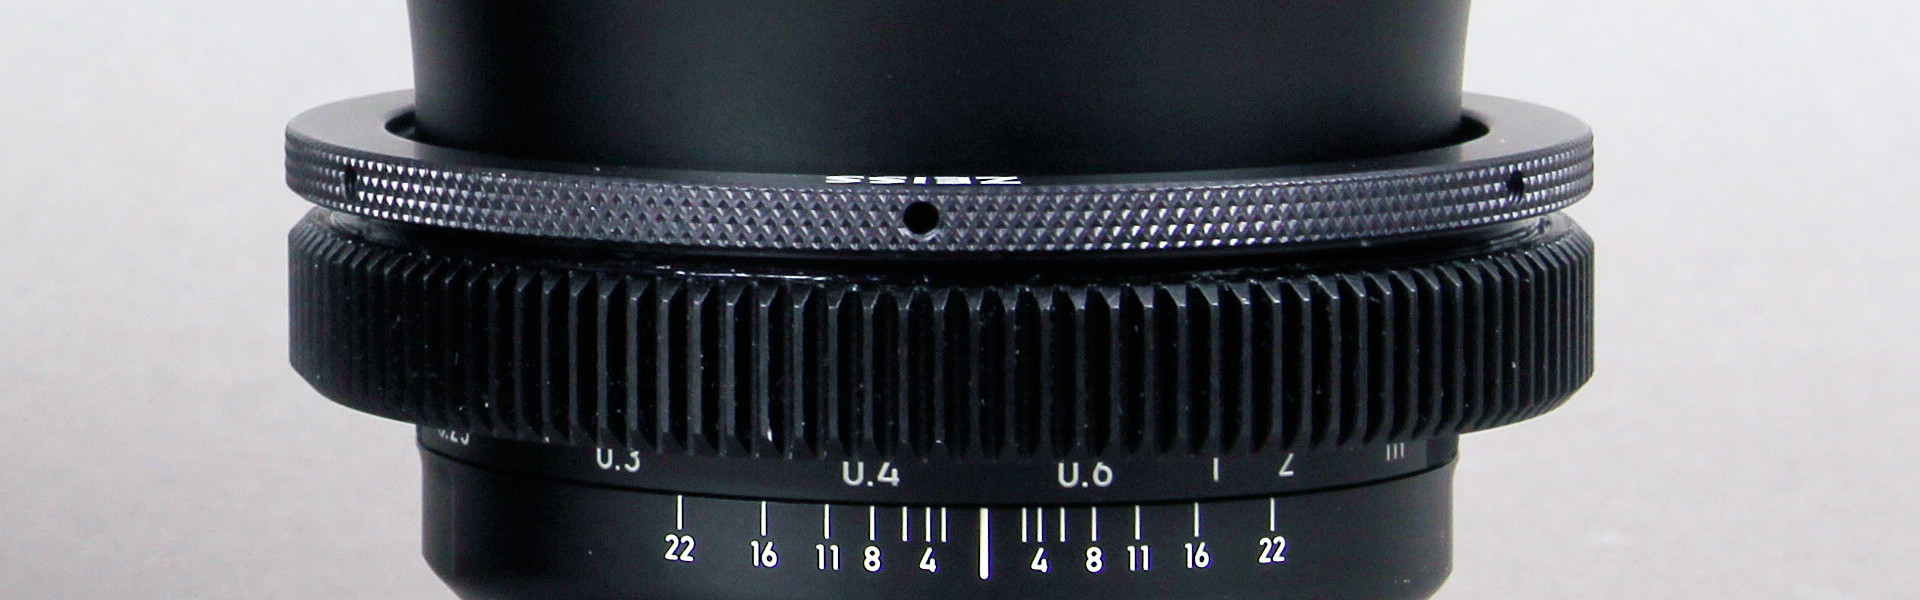 Header image for article Zeiss New Full Frame Lens Lineup Comparison Chart